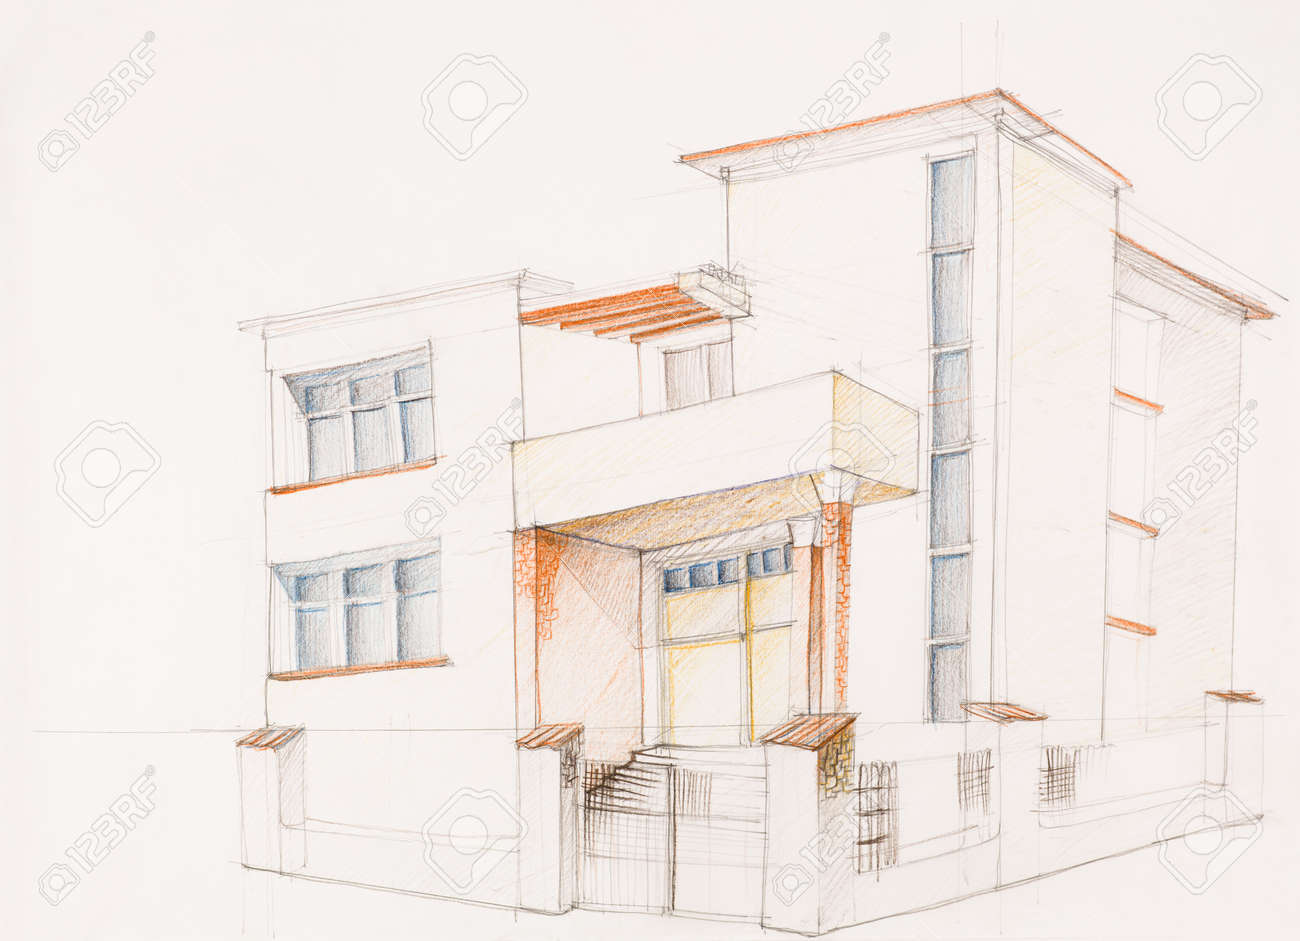 rchitectural Perspective Of Modern House, Drawn By Hand Stock ... - ^